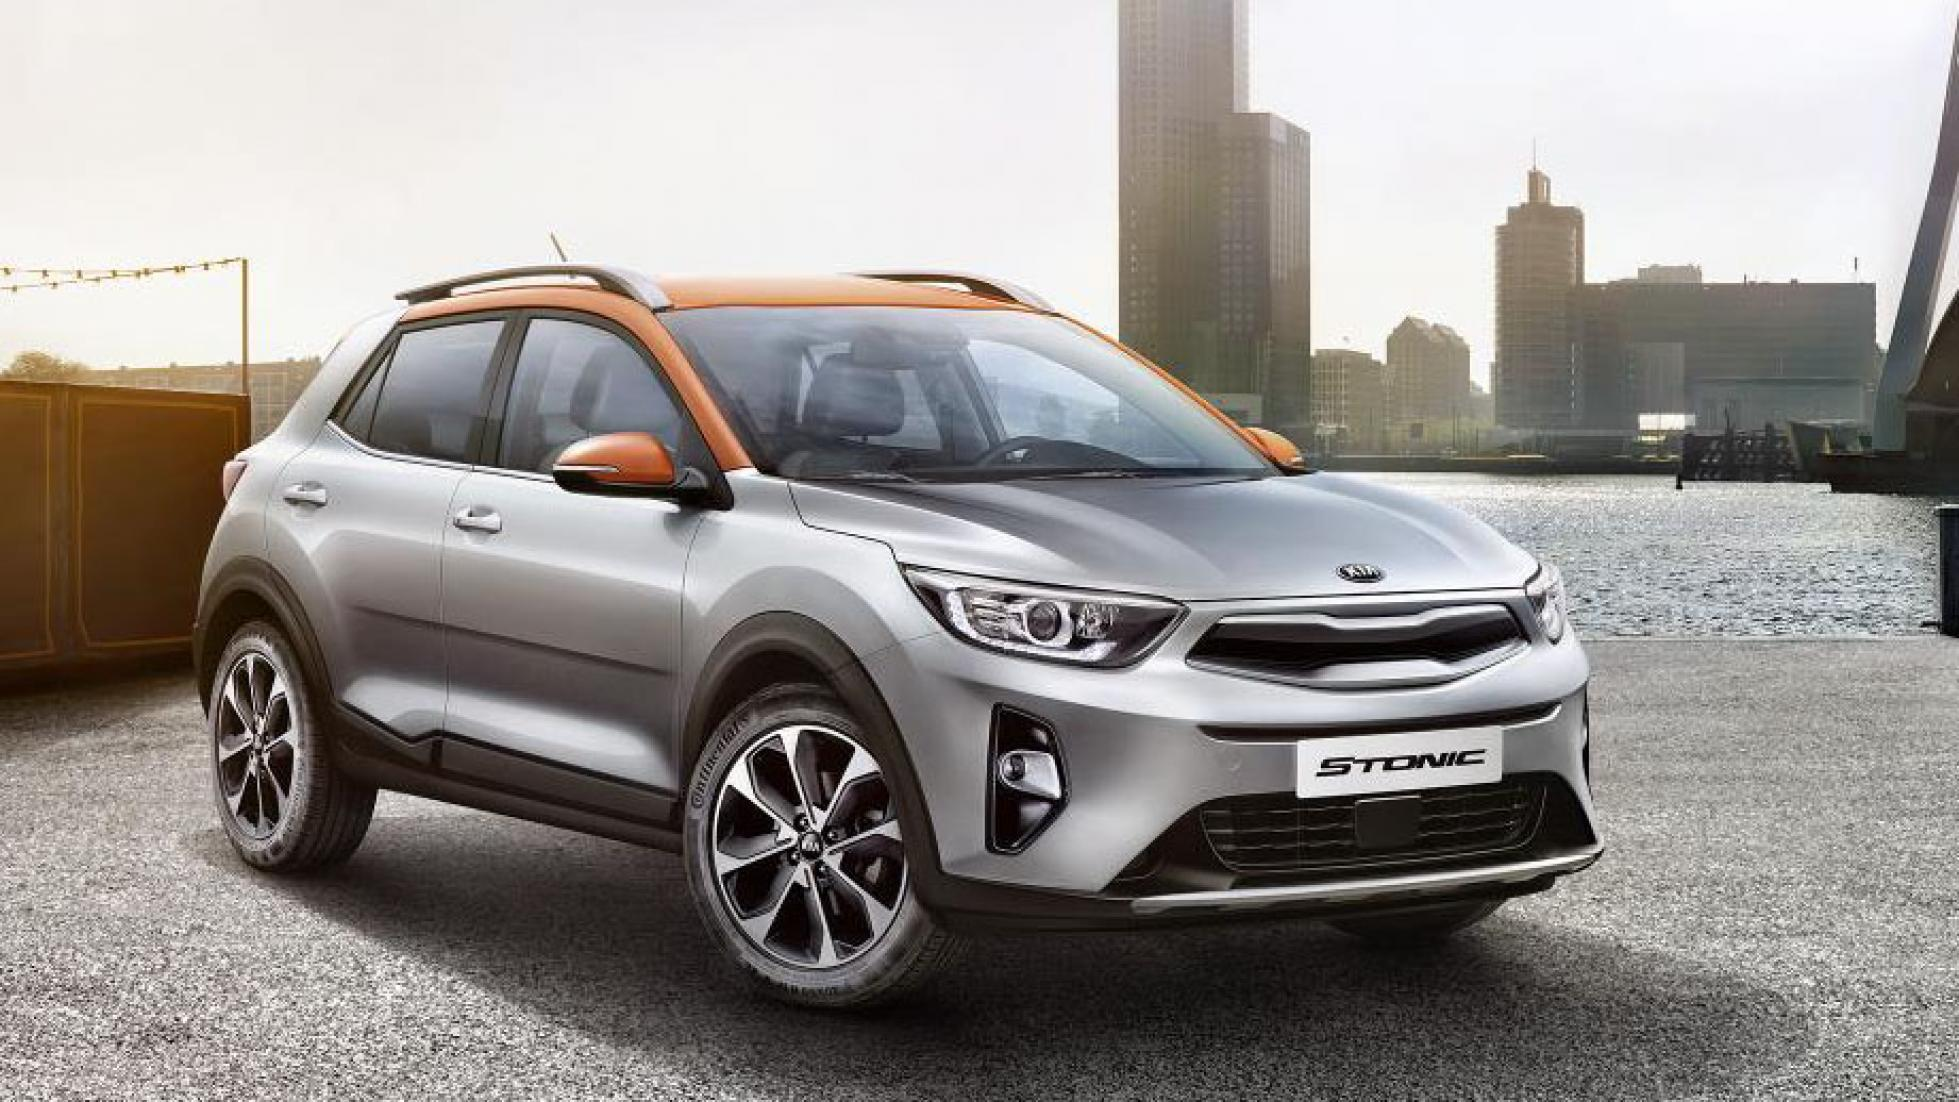 the kia stonic is (yet) another small crossover - car news - bbc